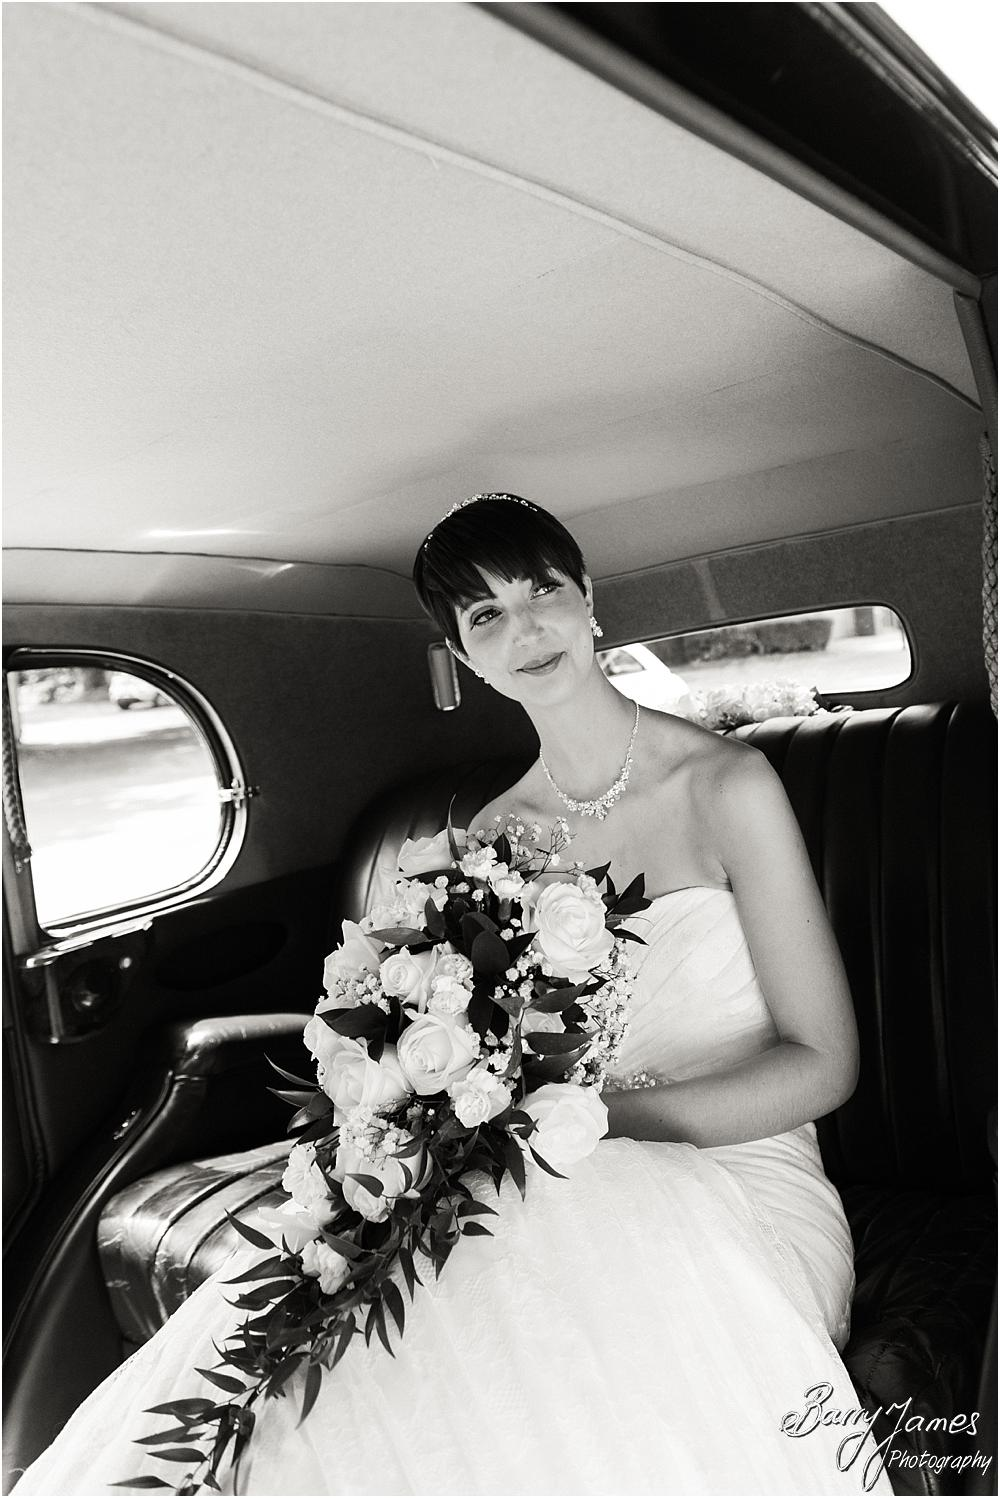 Arriving in style for the wedding at All Saints Church in Bloxwich by Walsall Wedding Photographer Barry James